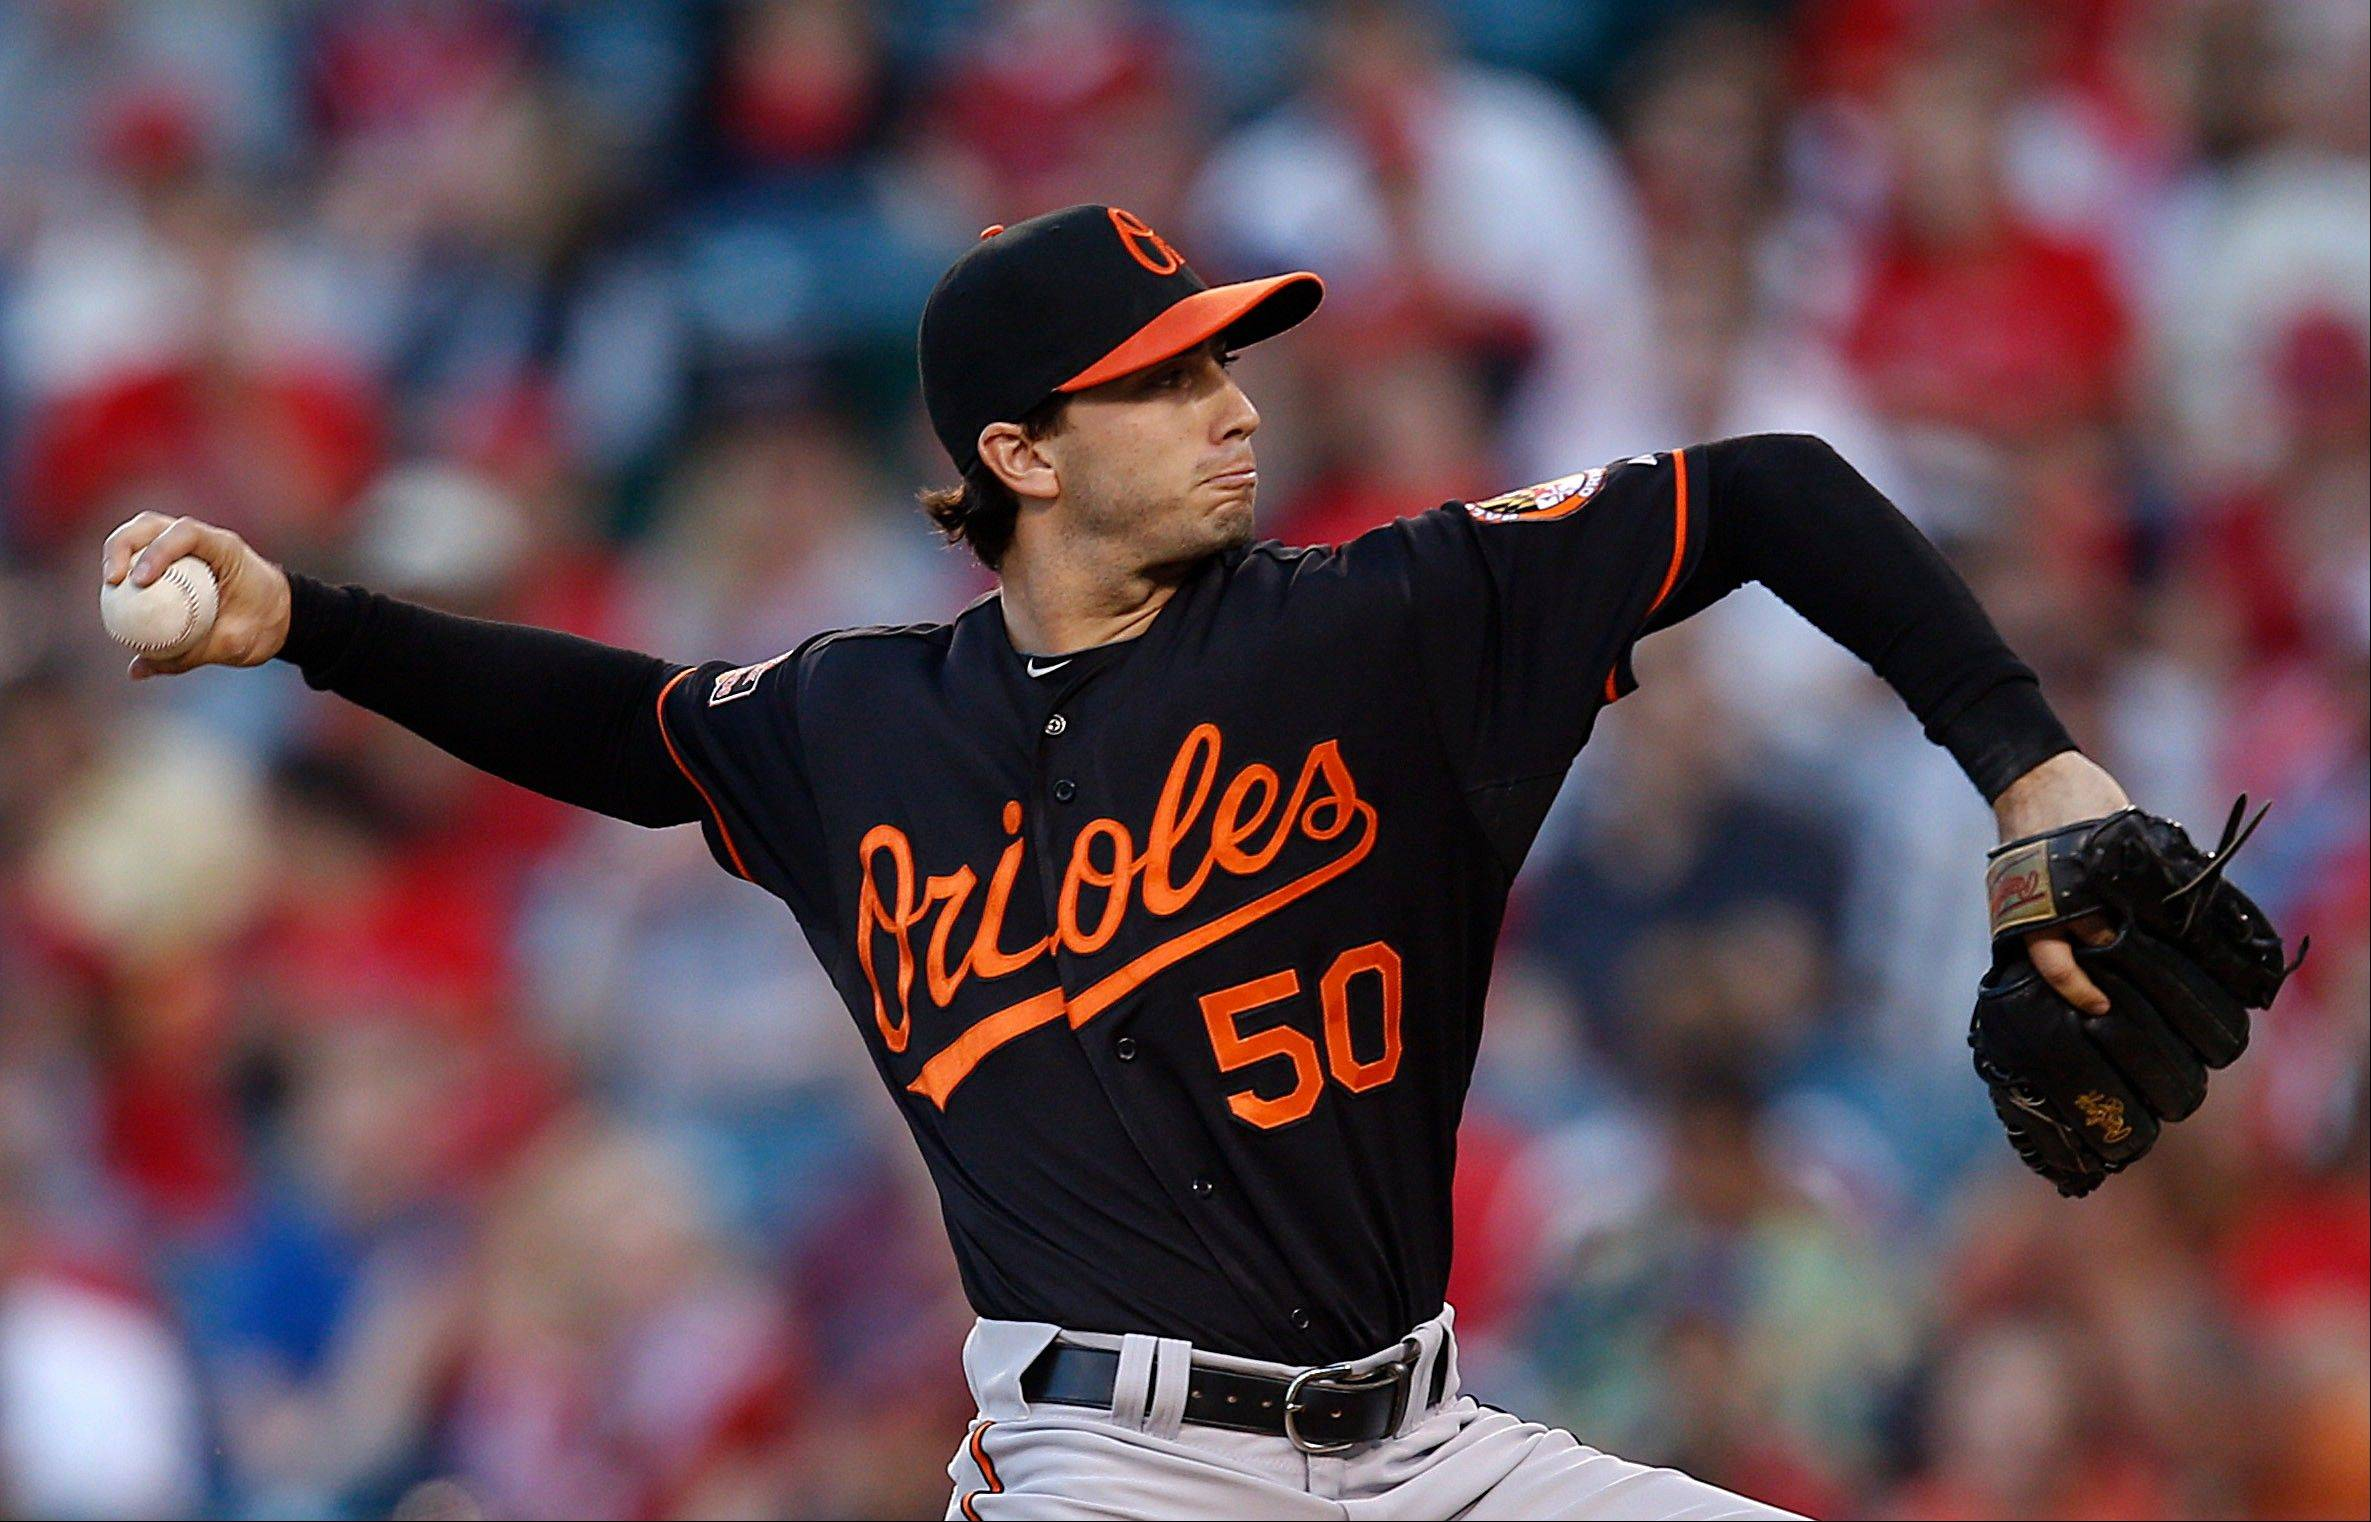 Baltimore's Miguel Gonzalez yielded three hits and a run while striking out six to win his first major league start Friday in Anaheim, Calif.